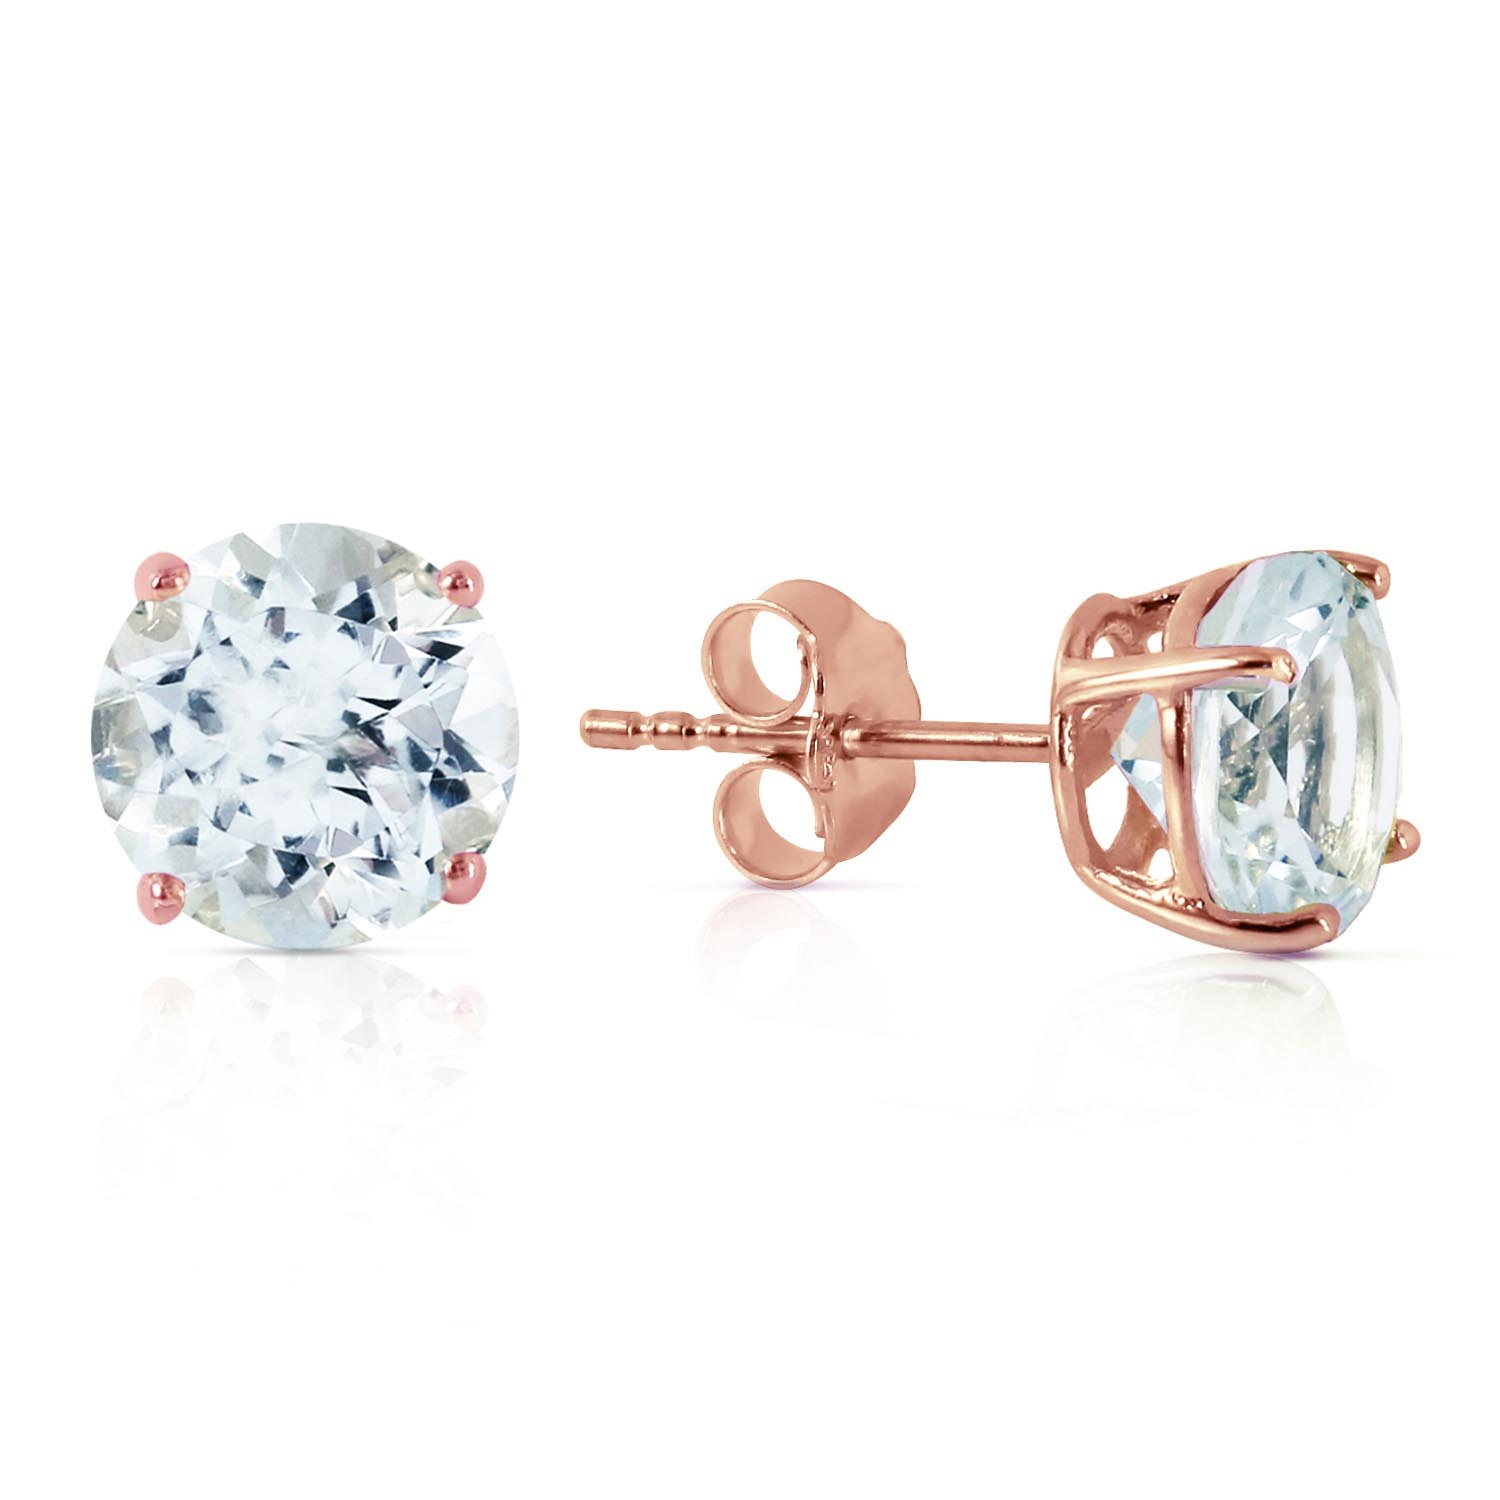 Aquamarine Stud Earrings 3.1ctw in 9ct Rose Gold